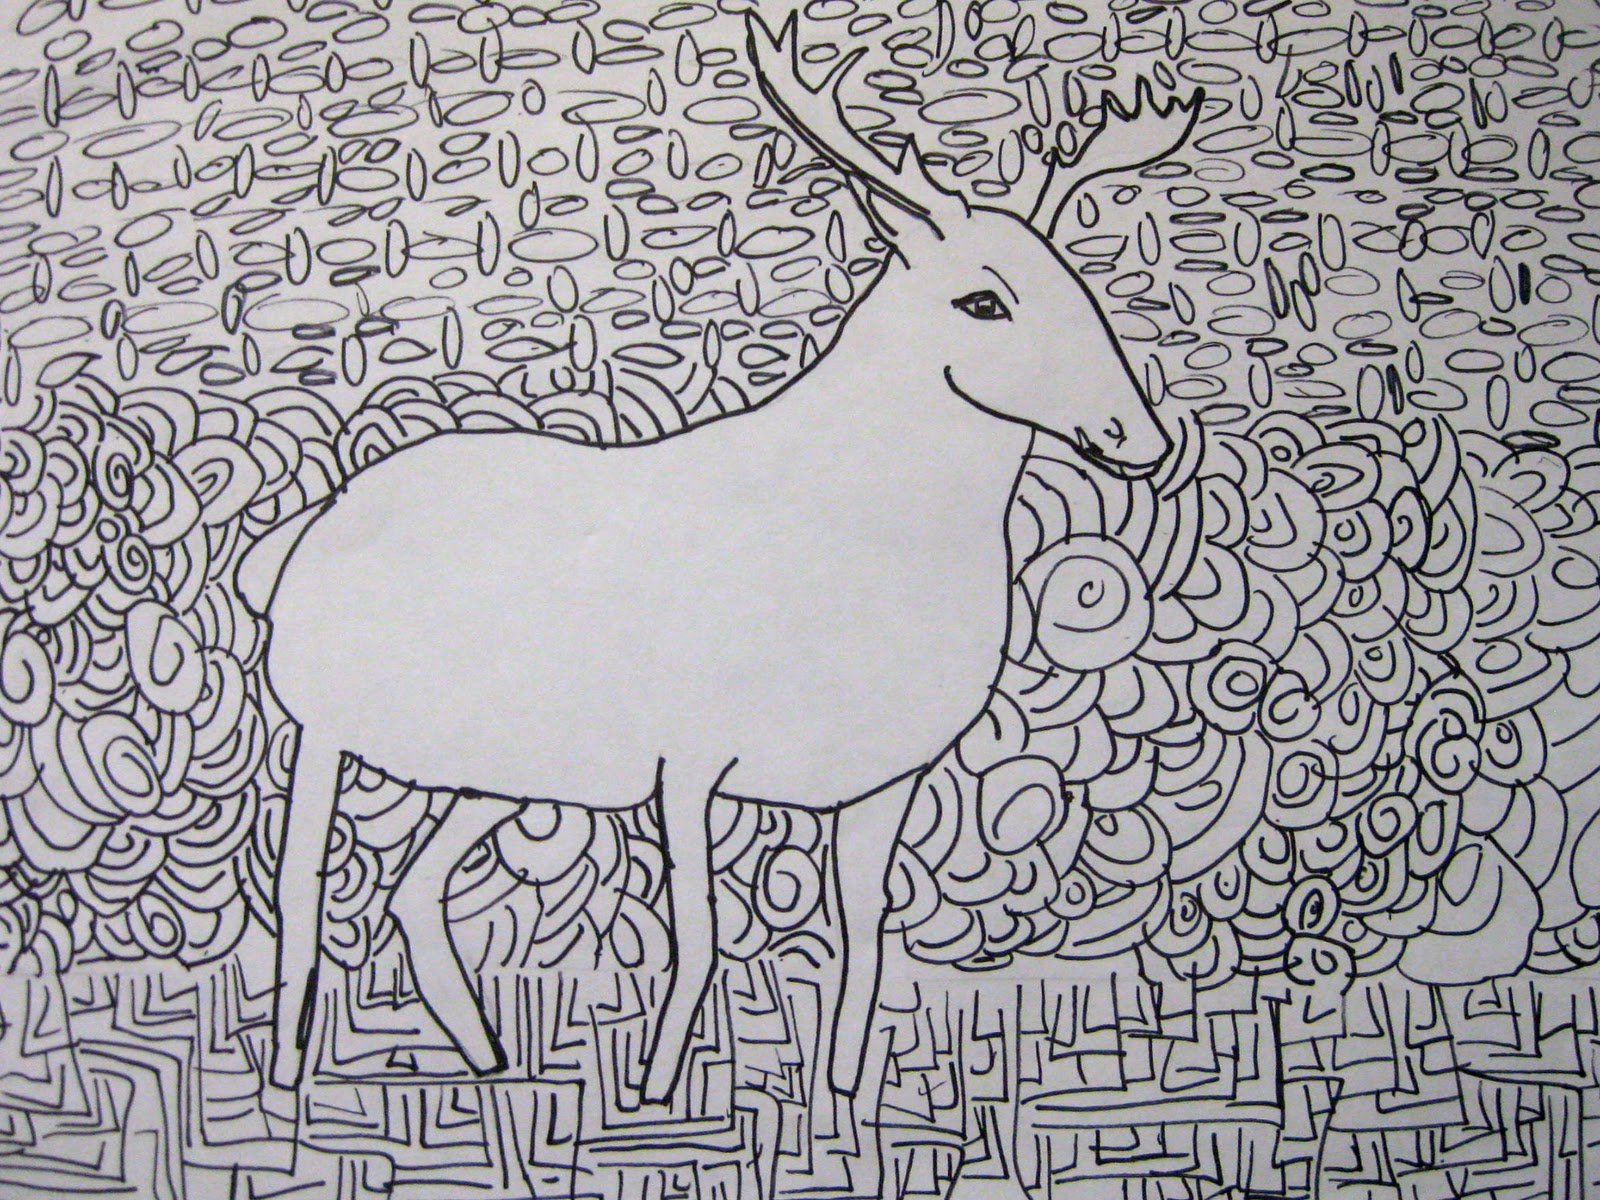 Organized Chaos 7th Grade Contour Line Drawing Of Animals